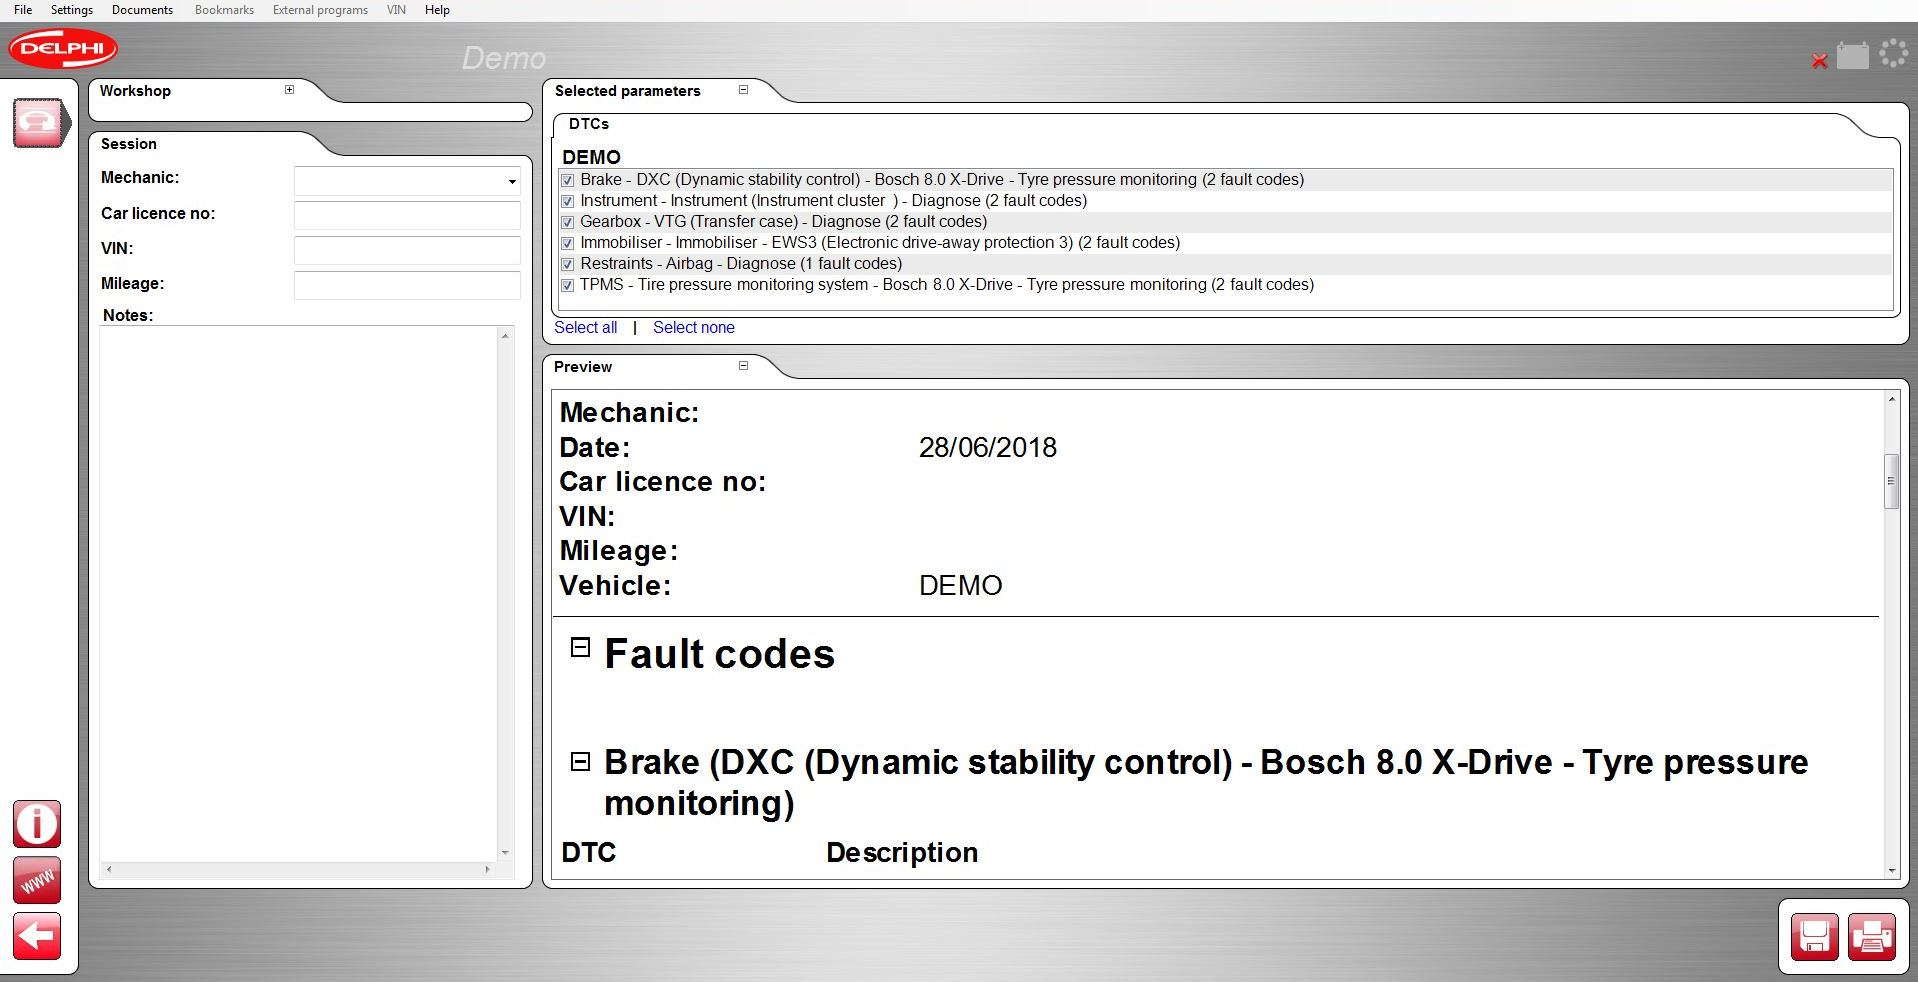 Car software report function